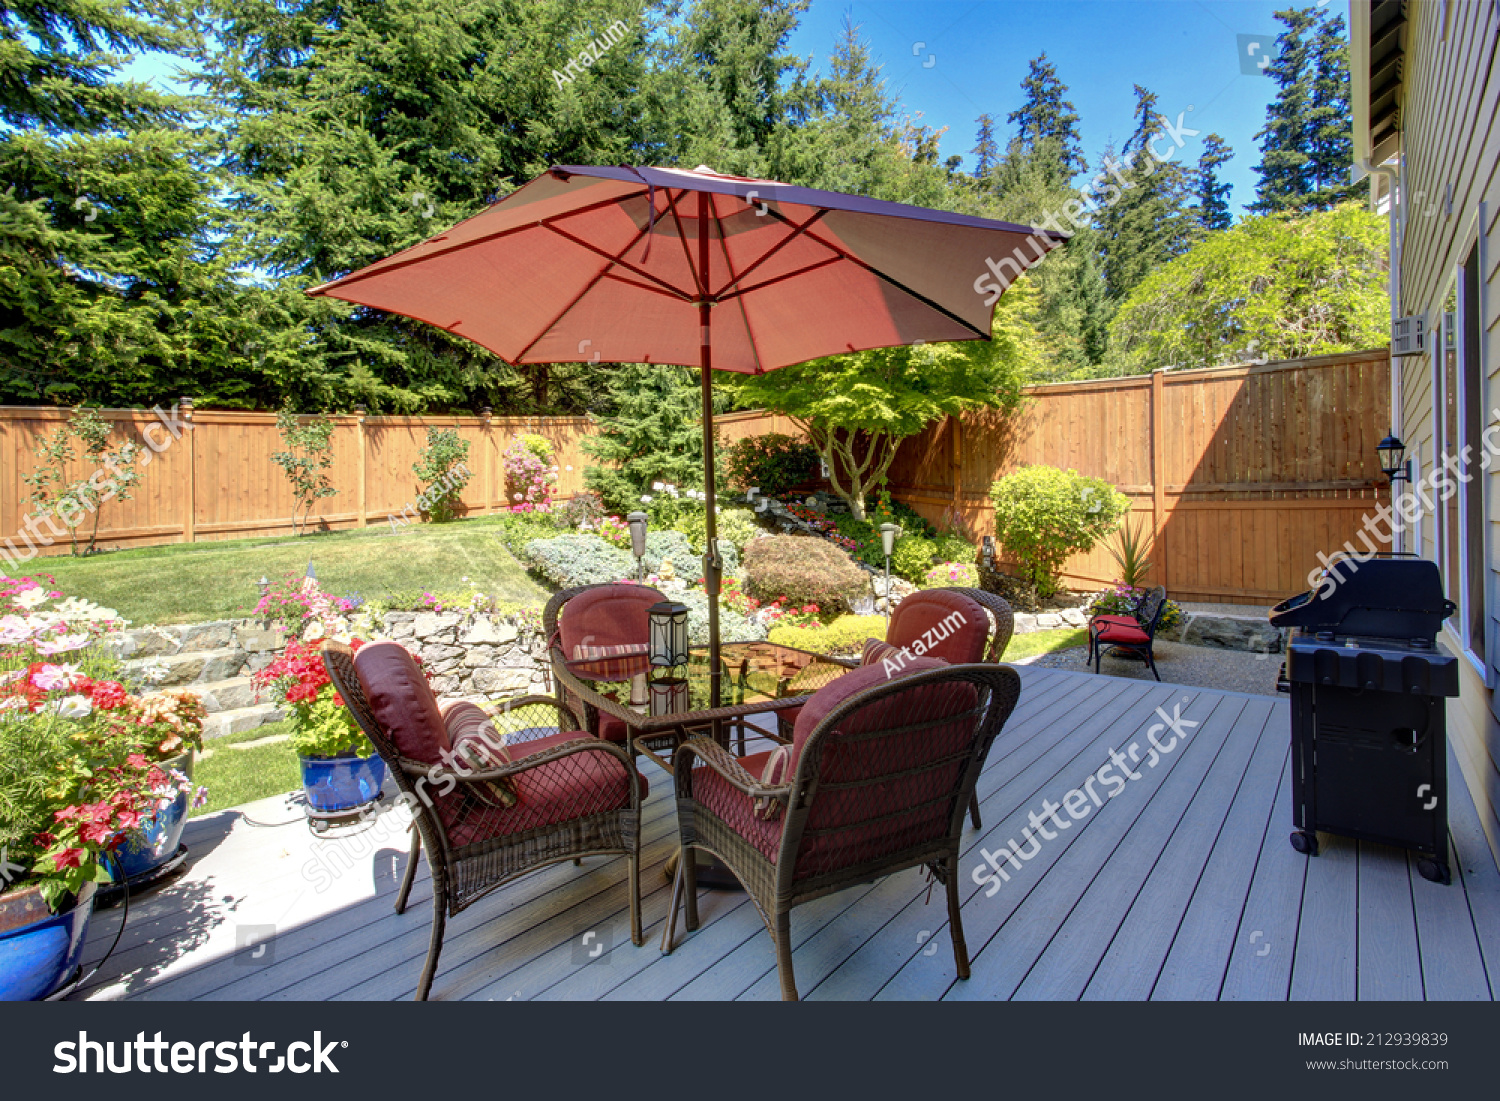 Beautiful landscape design for backyard garden and patio area on walkout deck #212939839